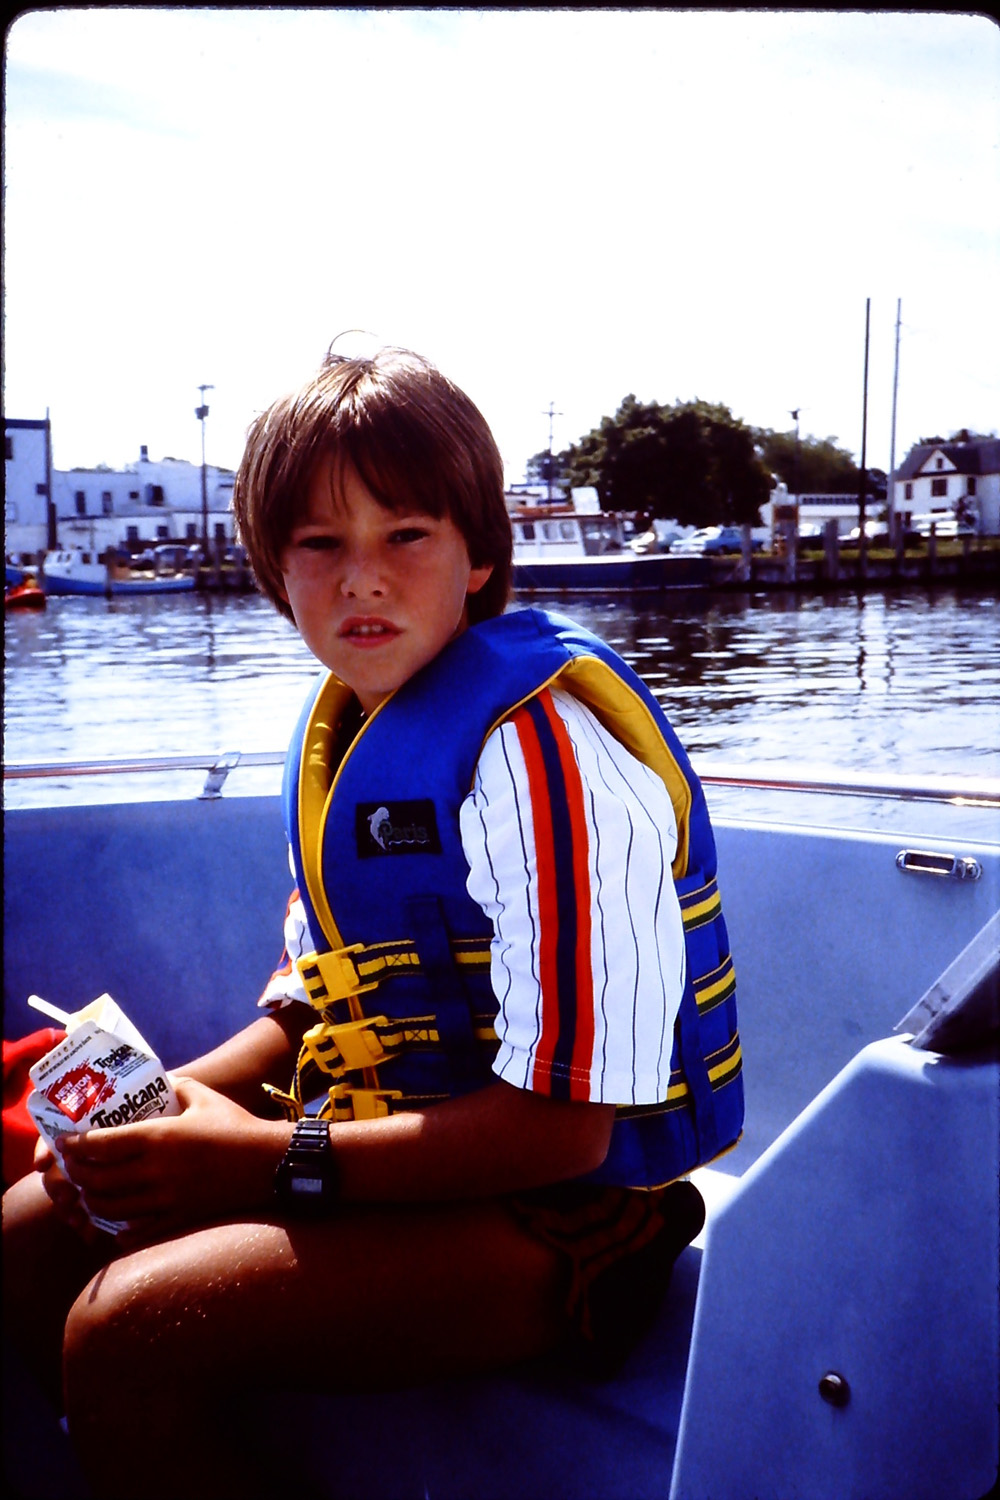 still not happy about the life jacket